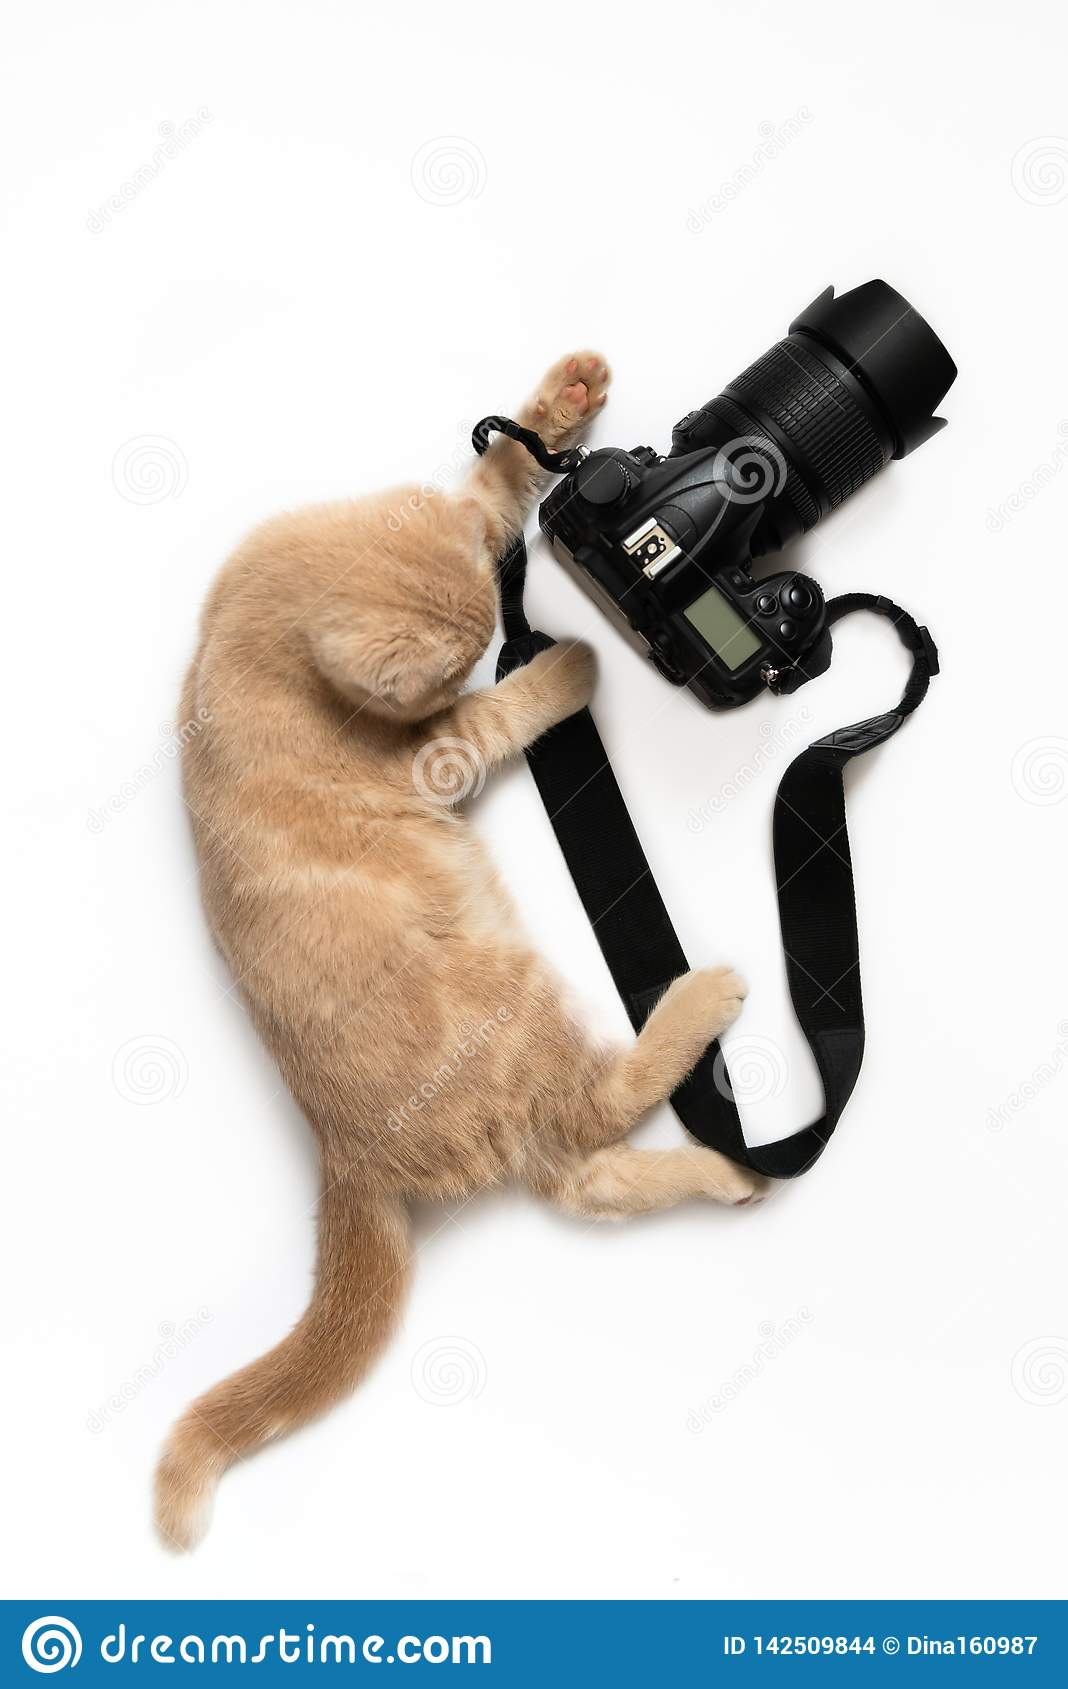 Photographer concept card. Cute cat with camera taking a photo isolated on white background. World photography day